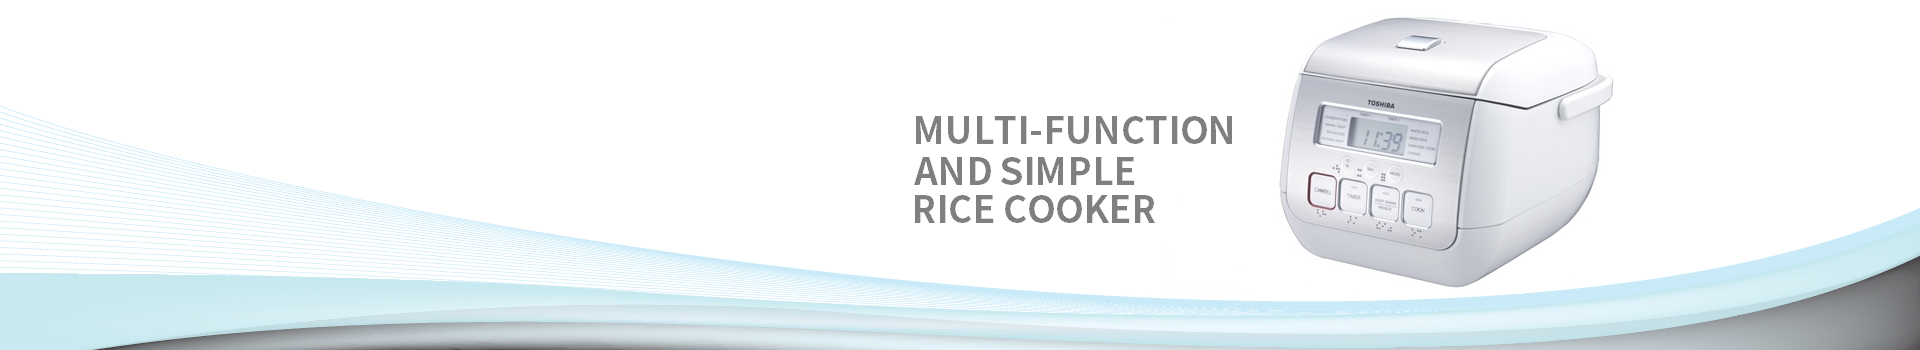 multi-function rice cooker banner